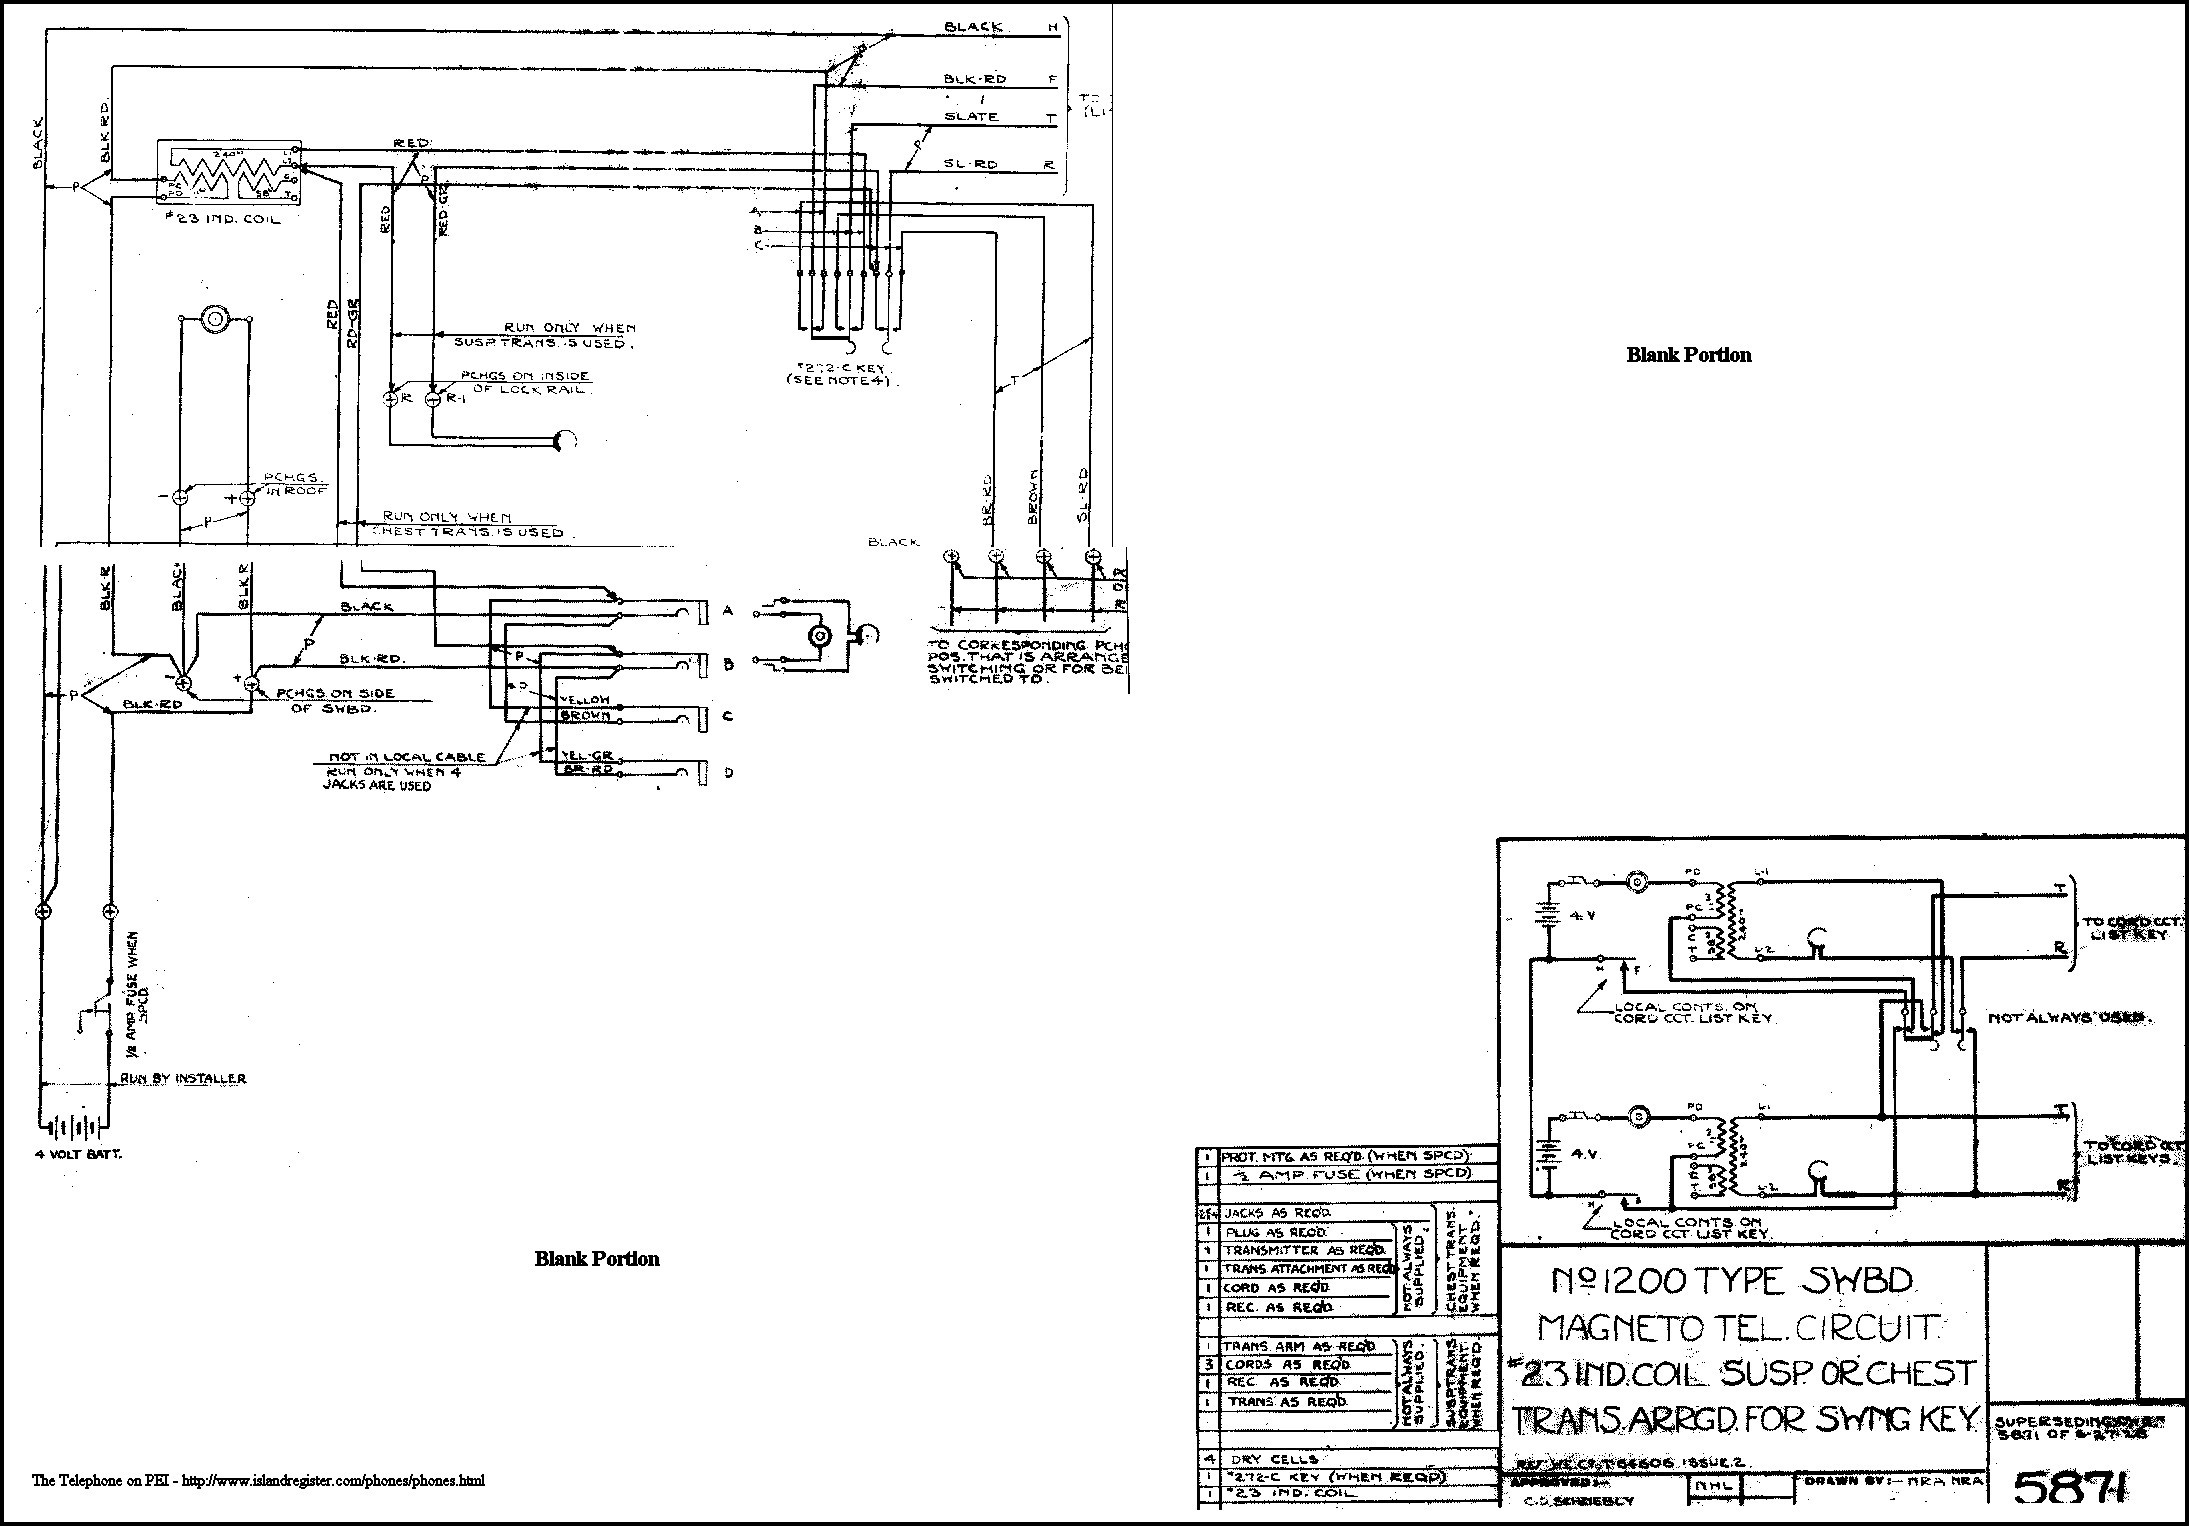 Telephone Wiring Diagram Outside Box Best Stunning Old Telephone Wiring Diagrams Gallery Electrical and